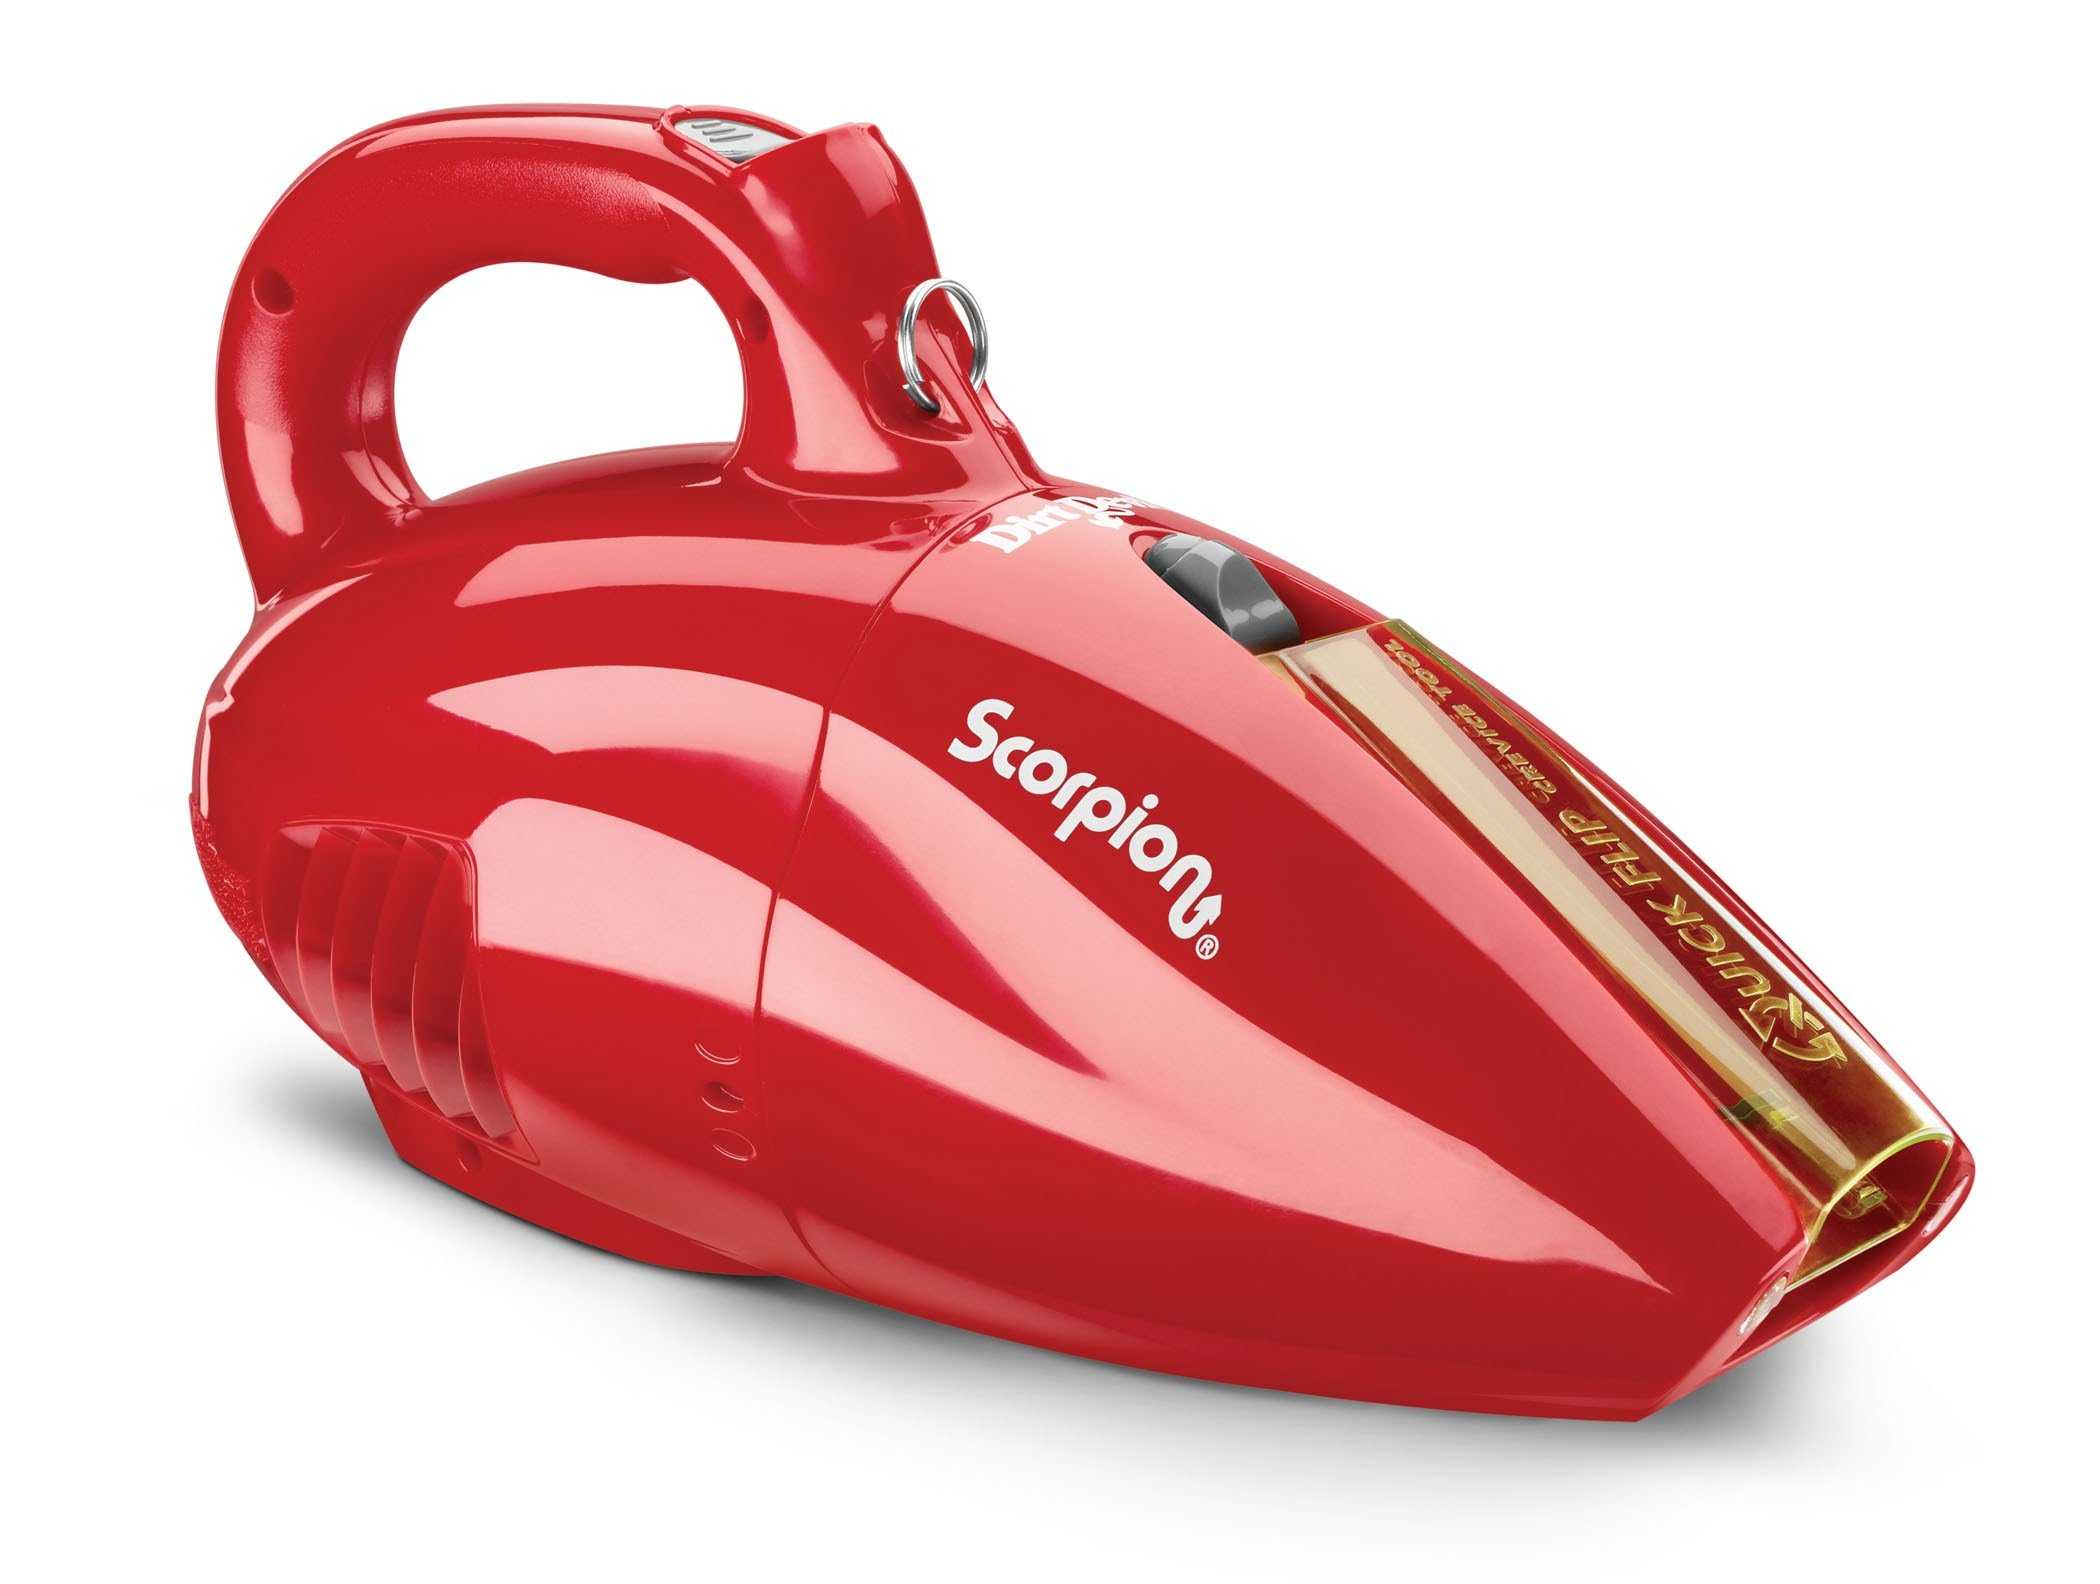 Dirt Devil Scorpion Quick Flip Corded Hand Vacuum, SD20005RED by Dirt Devil